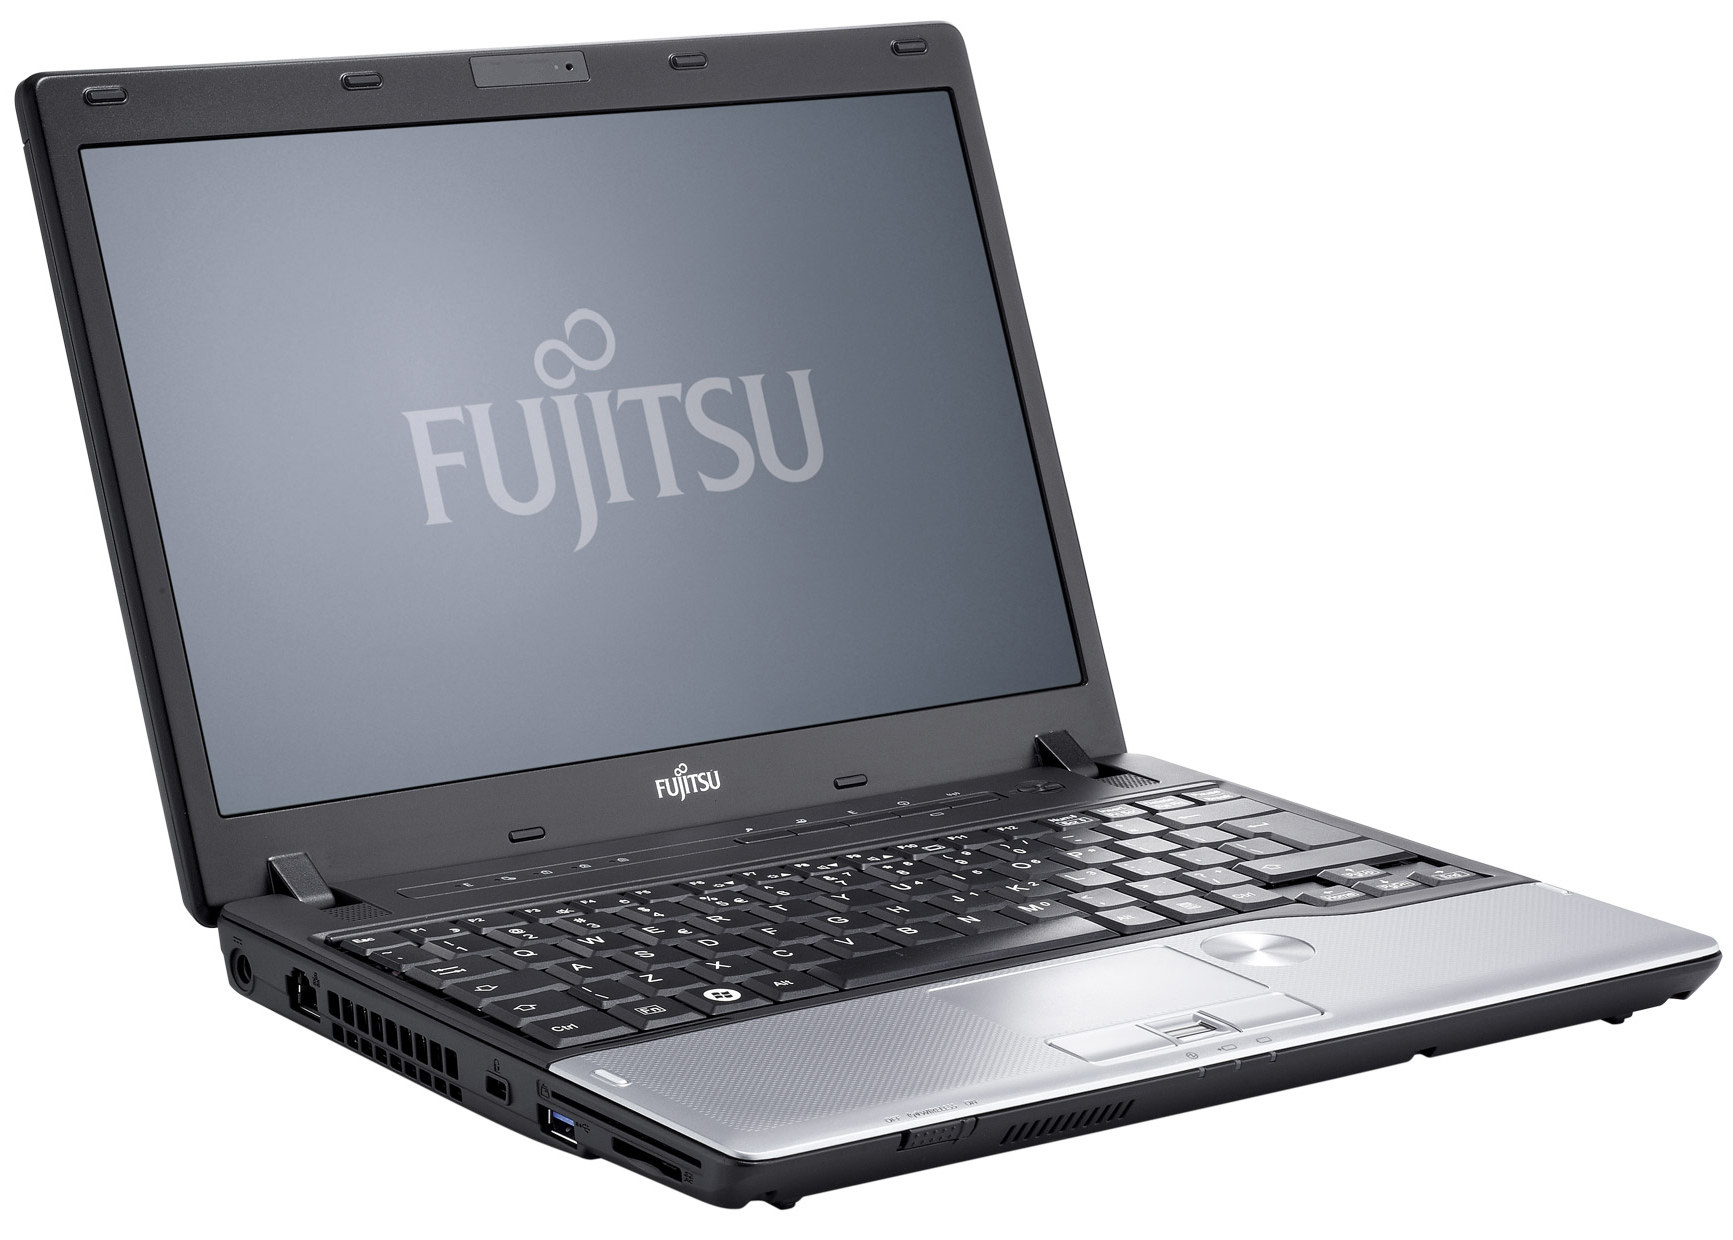 Laptop FUJITSU SIEMENS P702, Intel Core i5-3320M 2.60GHz, 4GB DDR3, 320GB SATA, 12.1 Inch